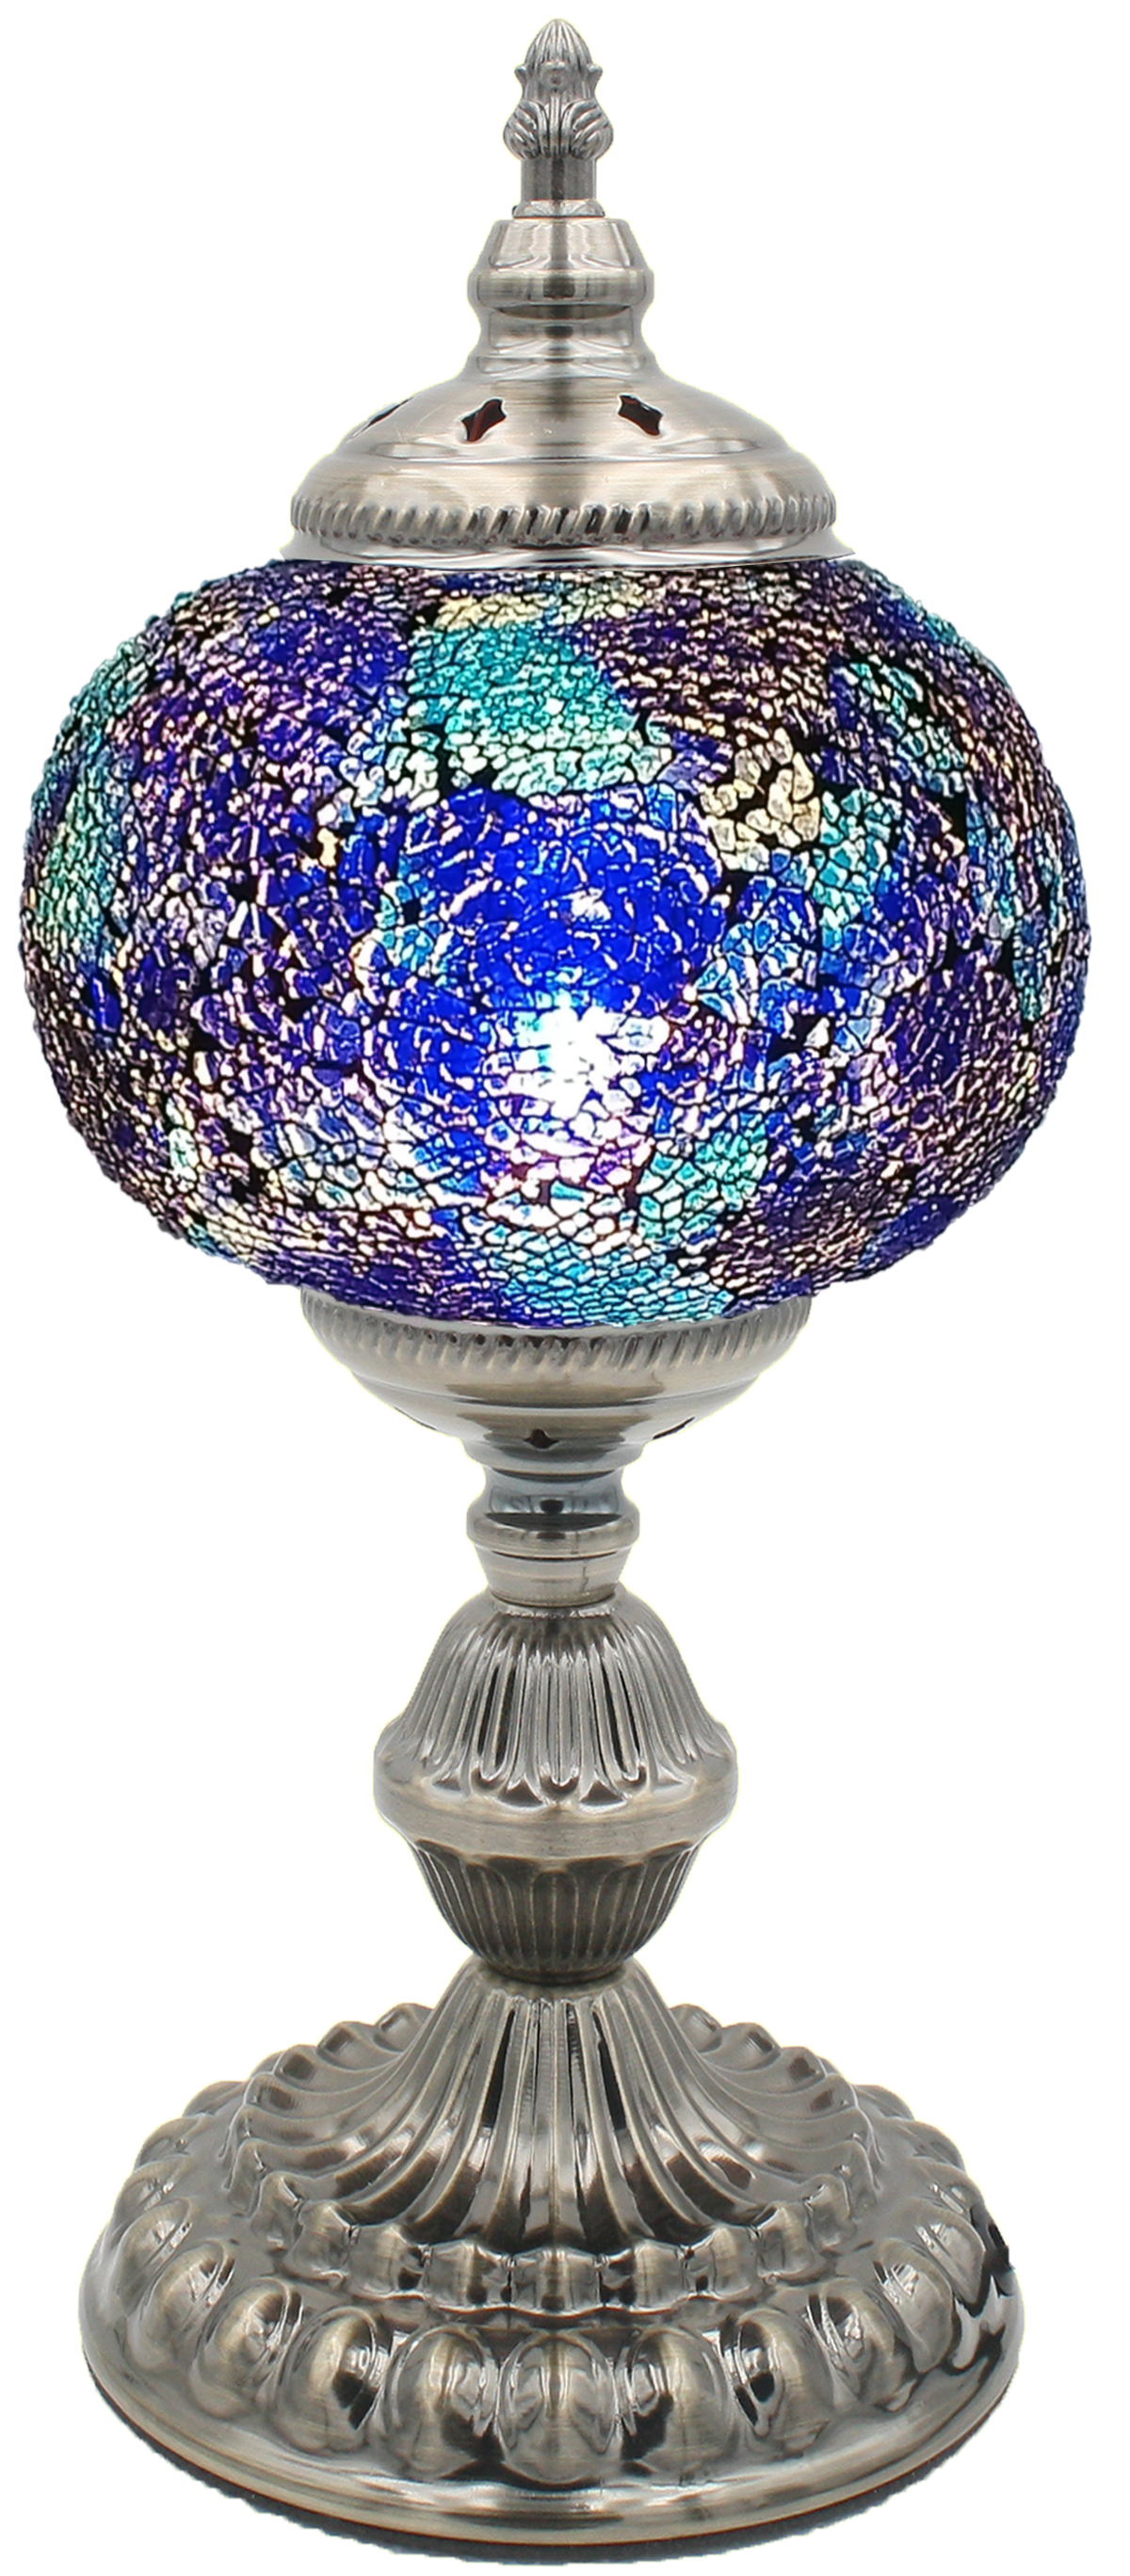 Hand Made Mosaic Glass Lamp - Without Bulb (211)